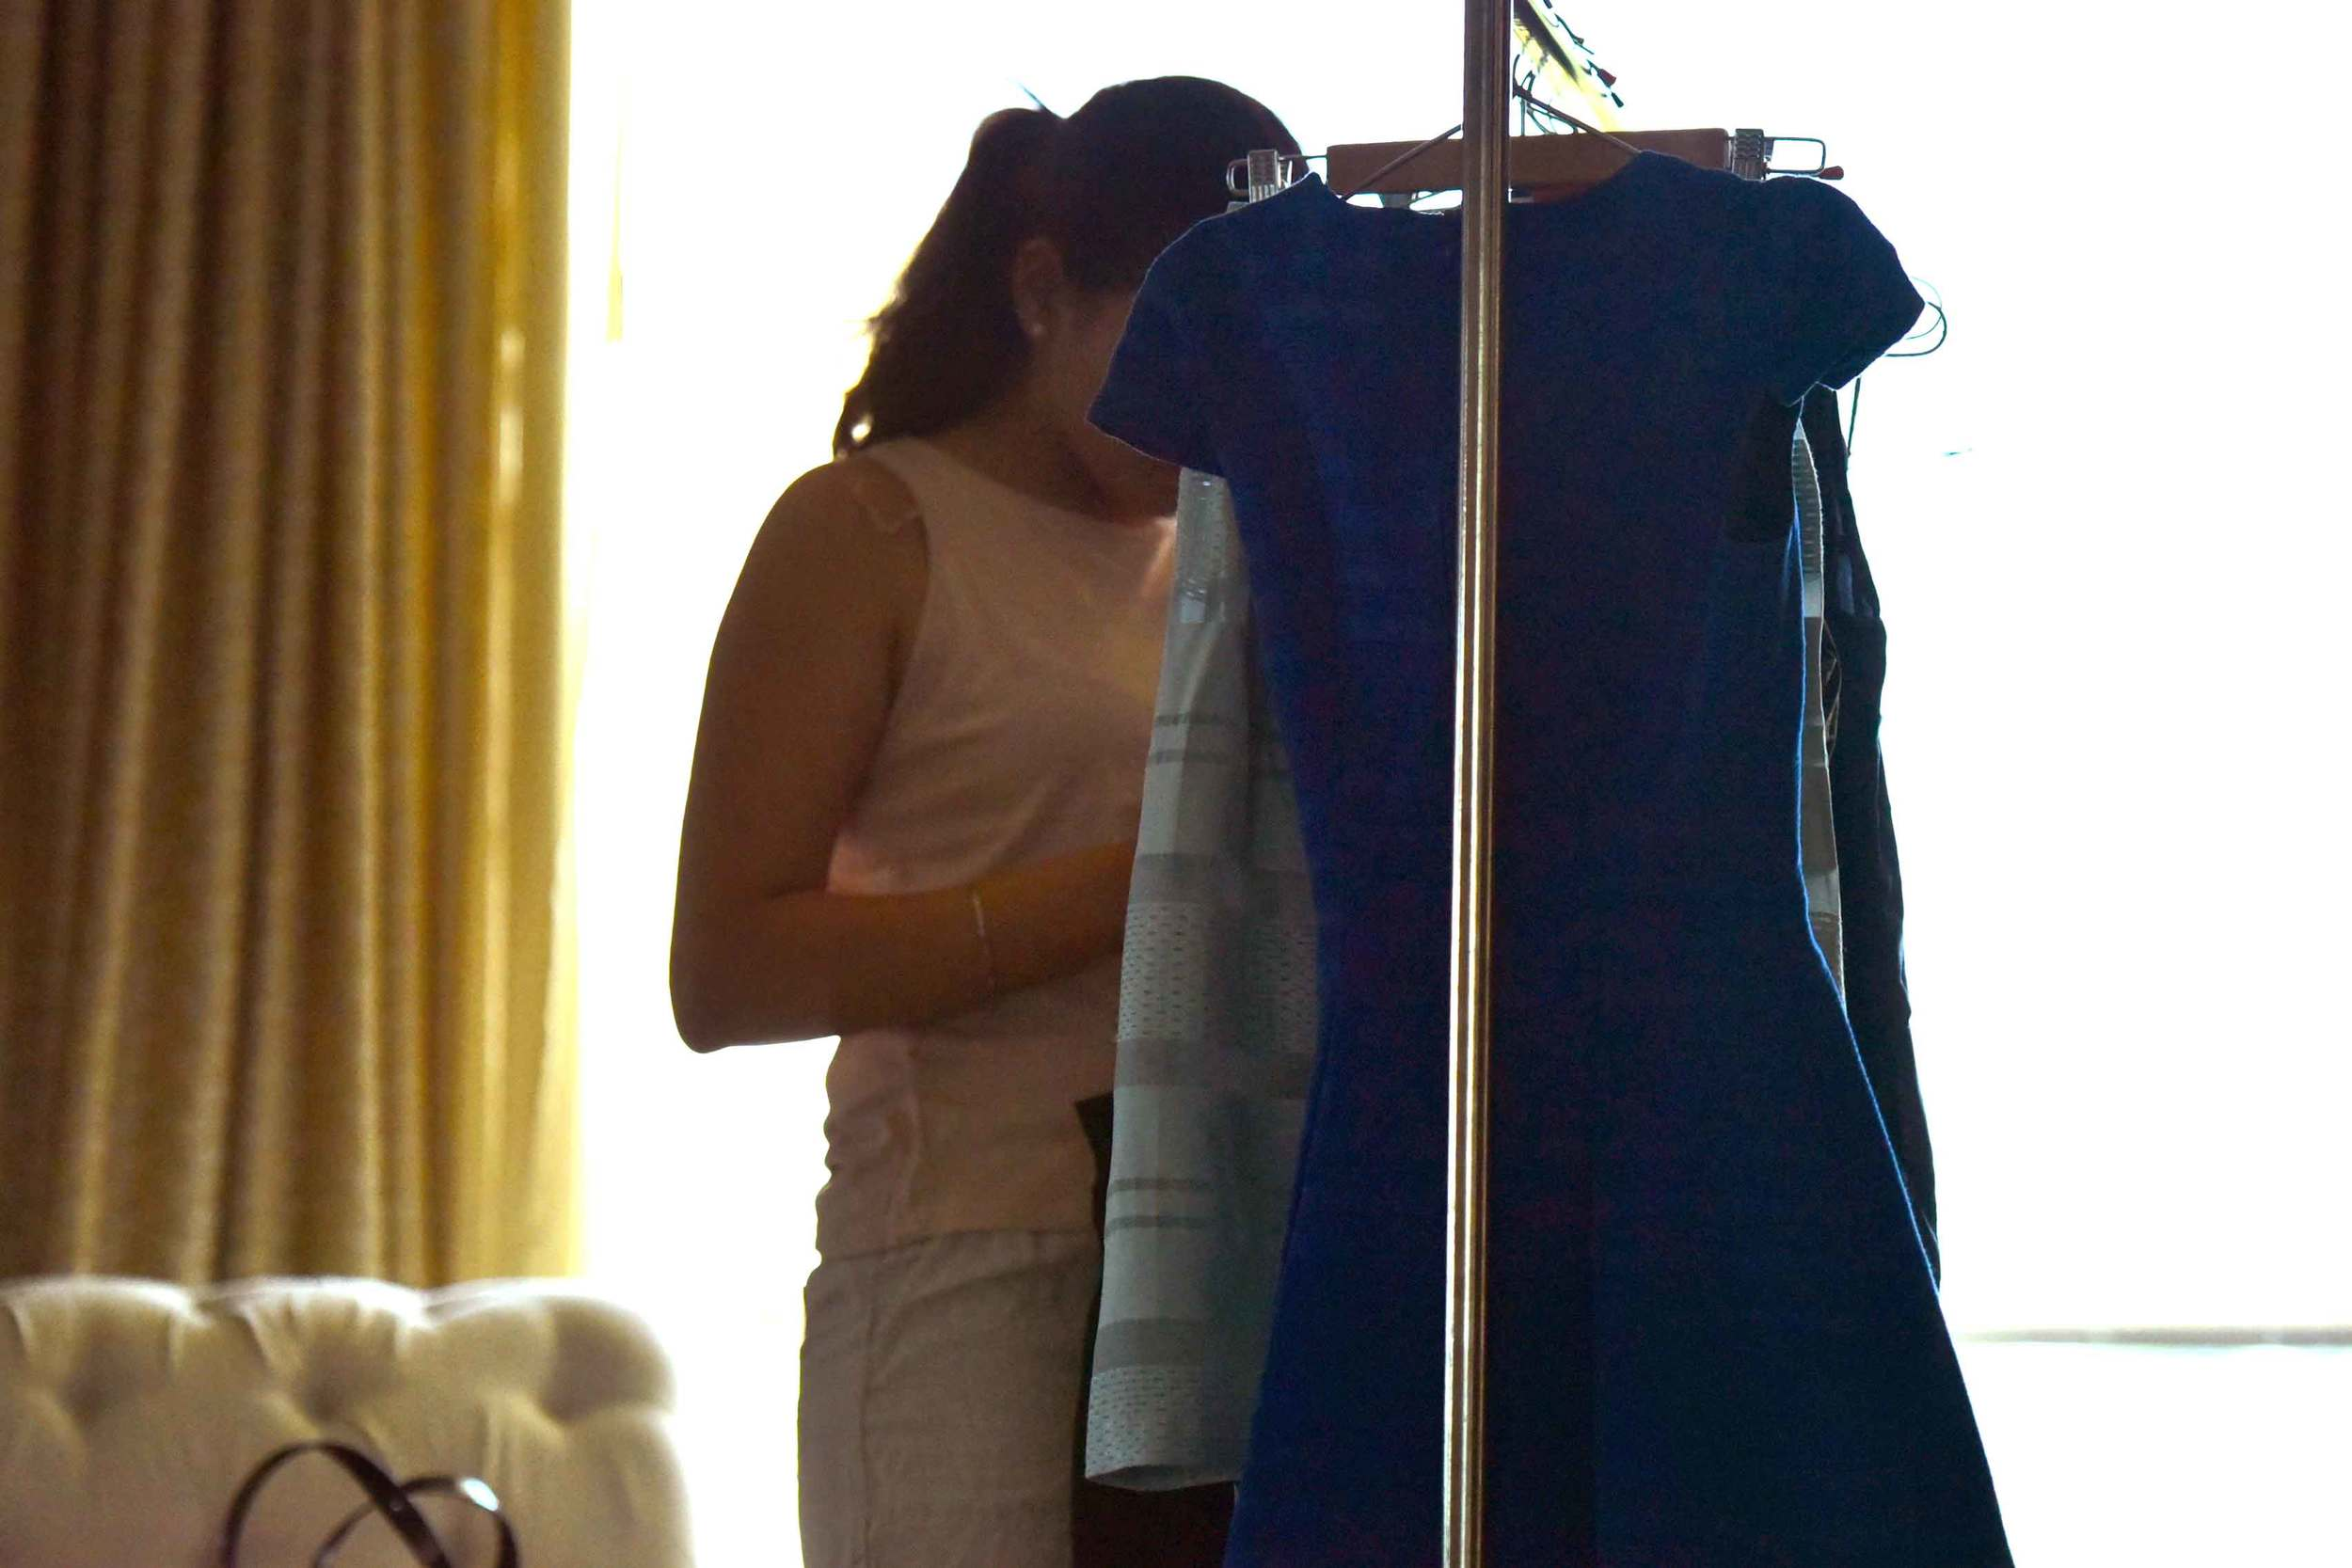 Getting clothes organized for a fashion photoshoot, image©gunjanvirk